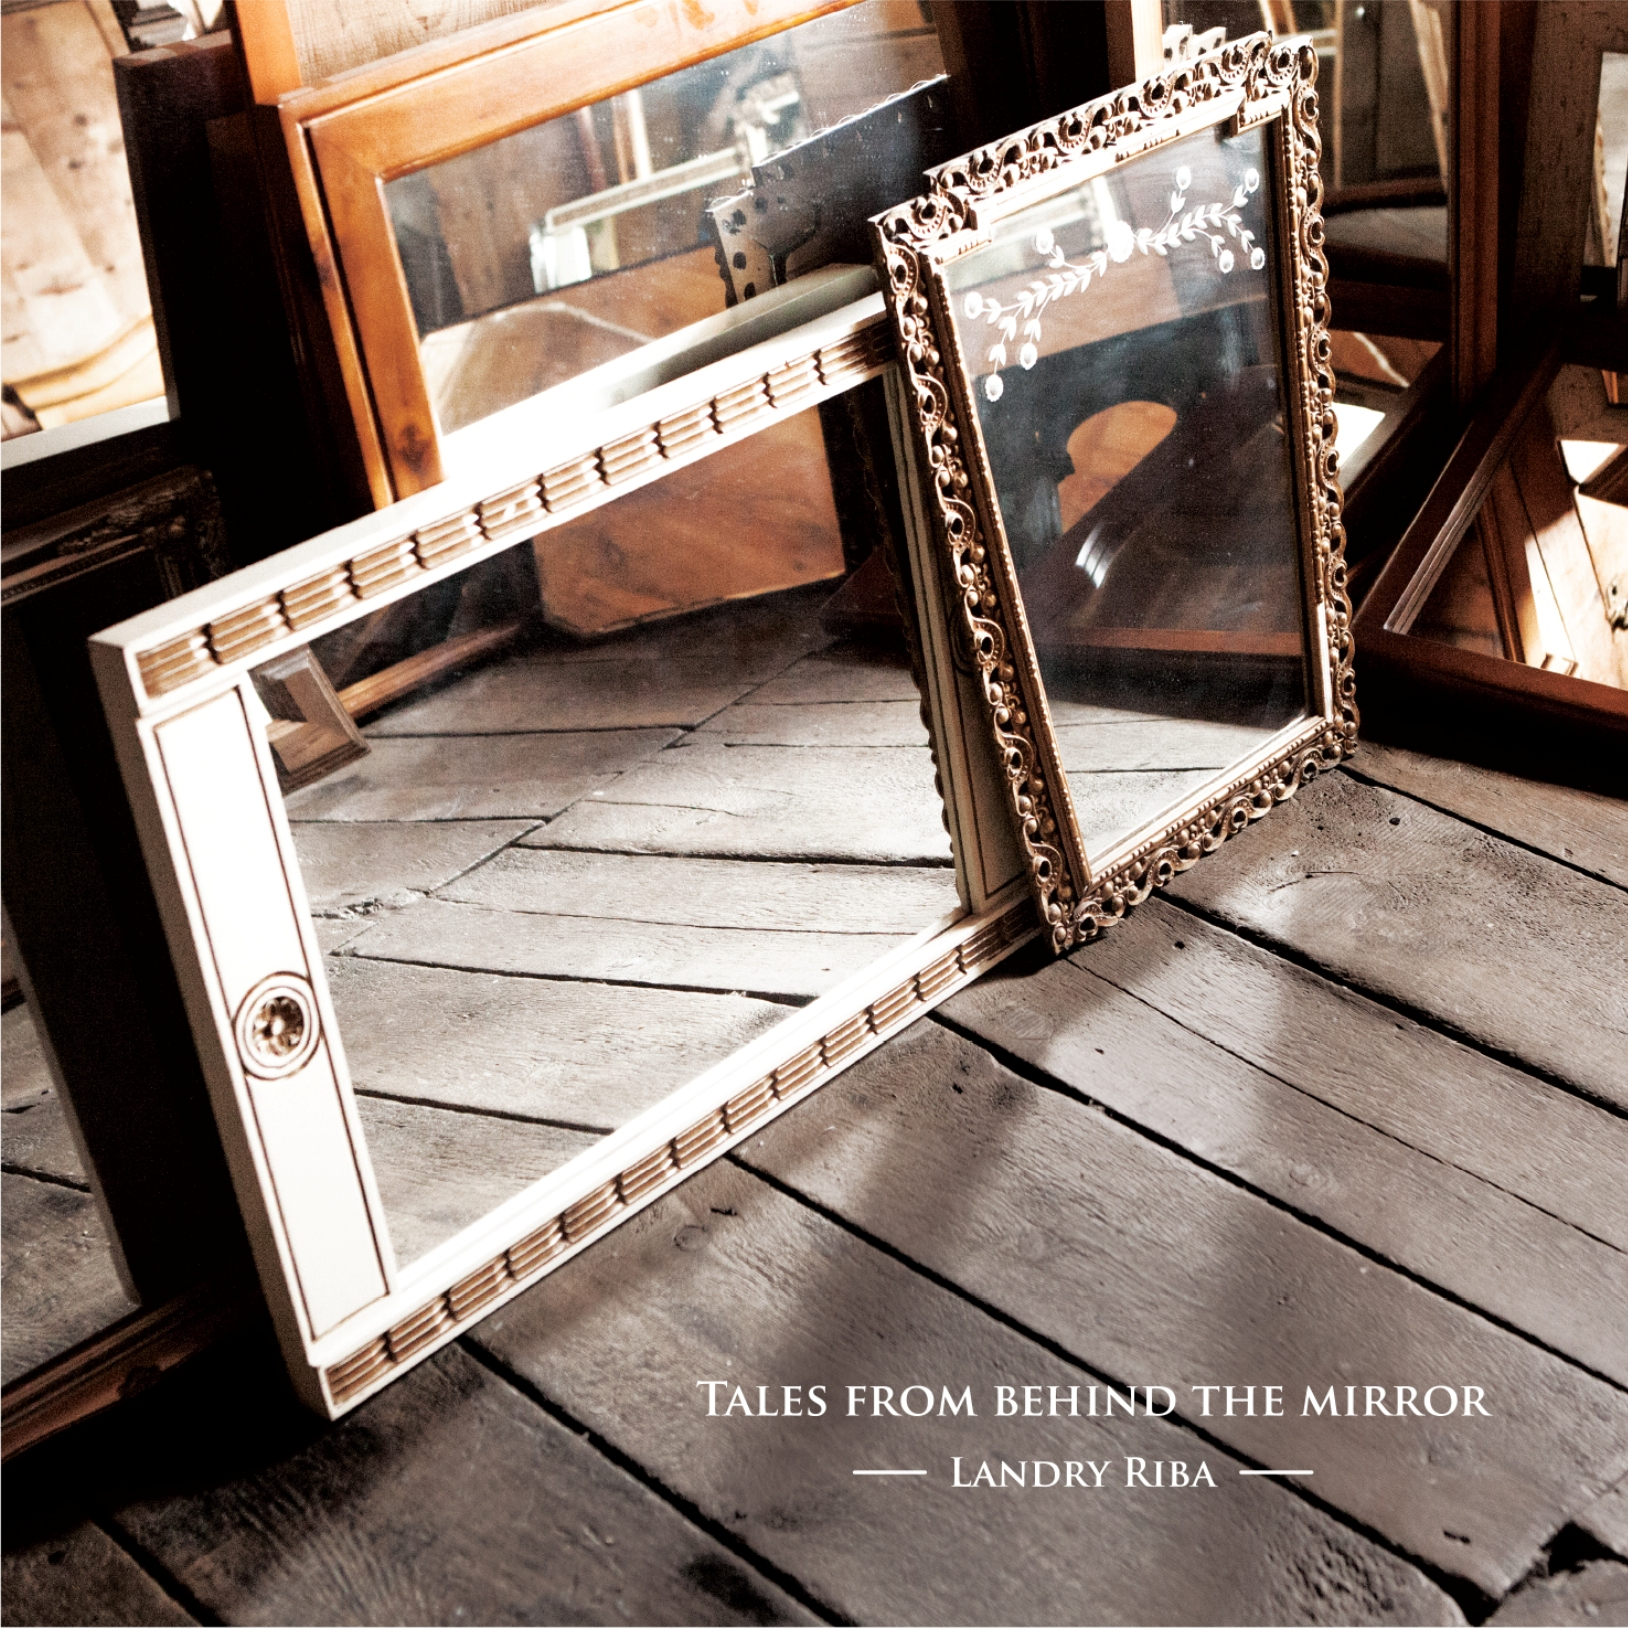 Tales from behind the mirror - CD